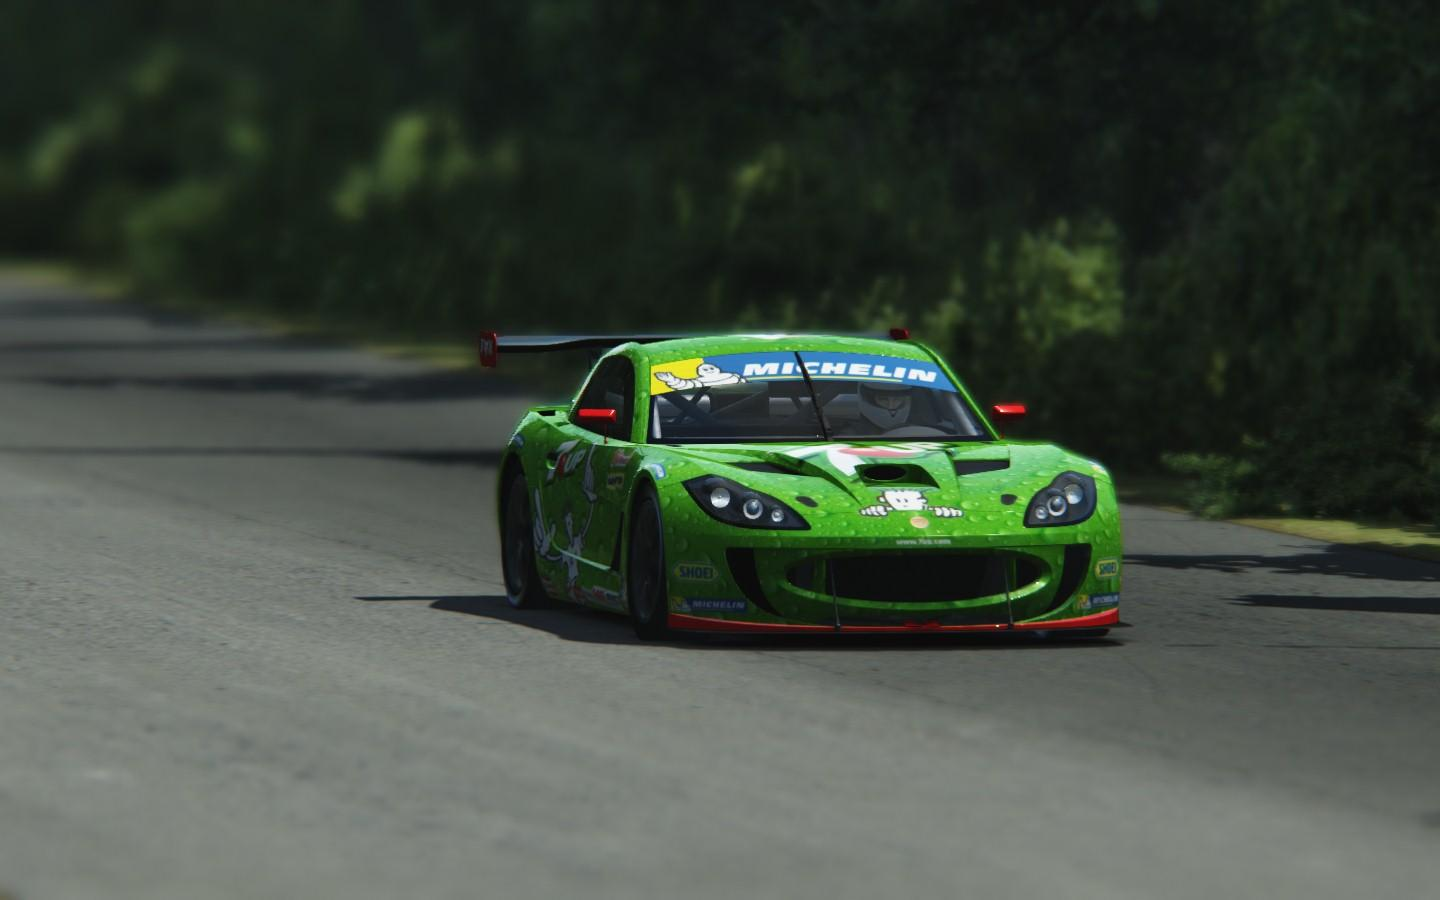 Assetto Corsa - Lotus Ferrari Porsche - SimHQ Forums